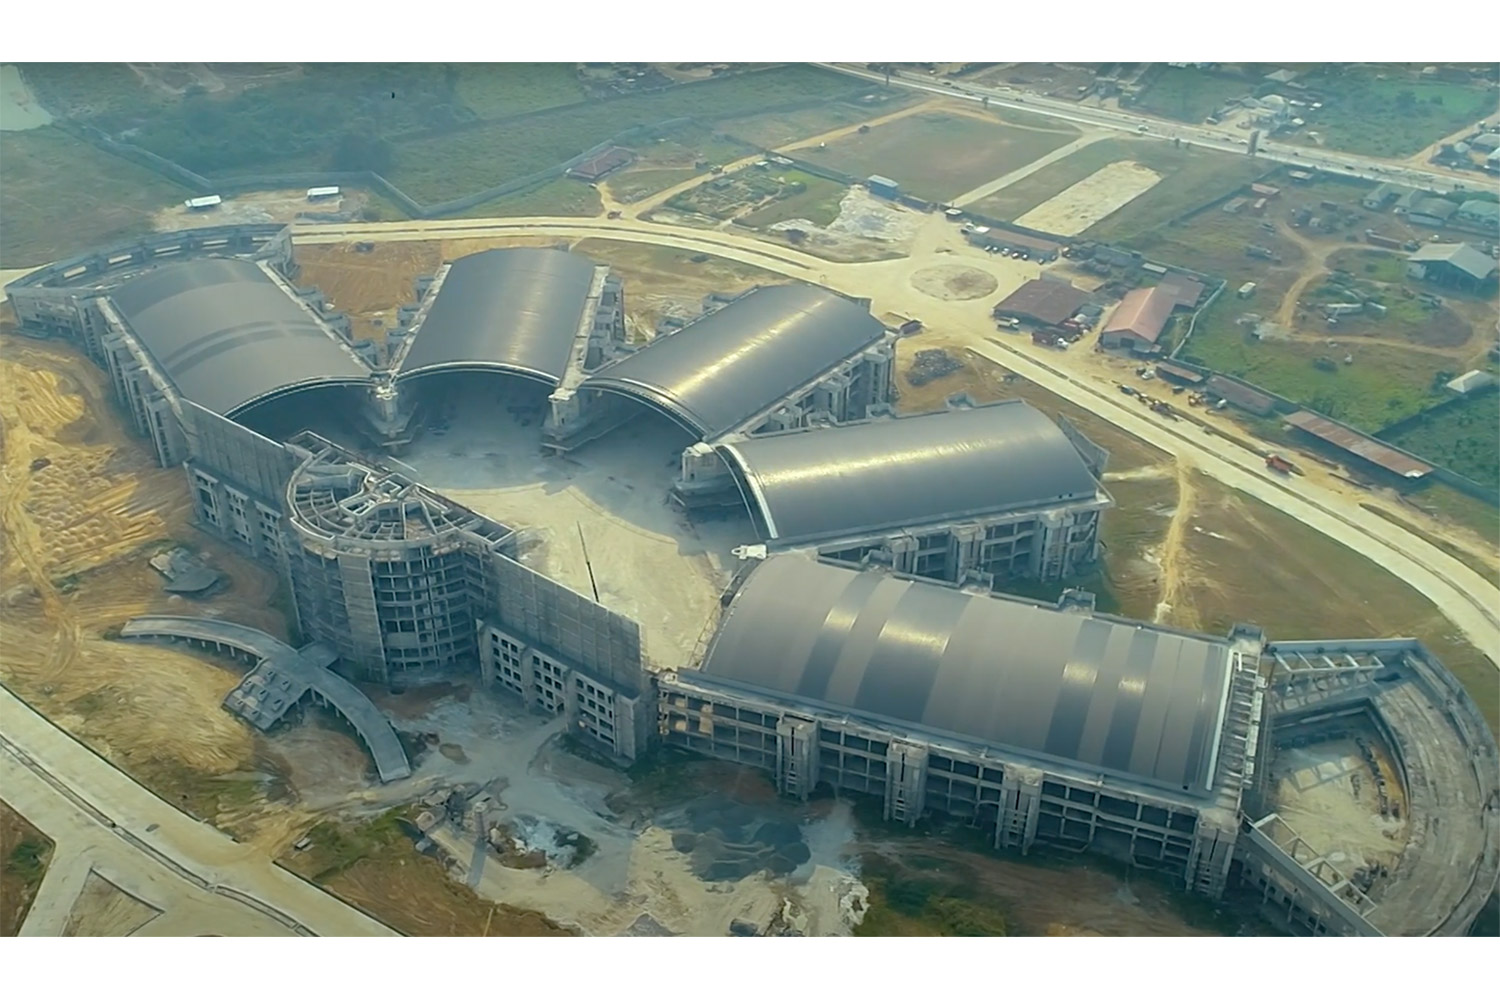 "Bishop David Oyedepo Salvation Ministries ""Hand of God"". WSDG brought to supervise the acoustic design and design professional audio and video production facilities for the worship center. Aerial view."